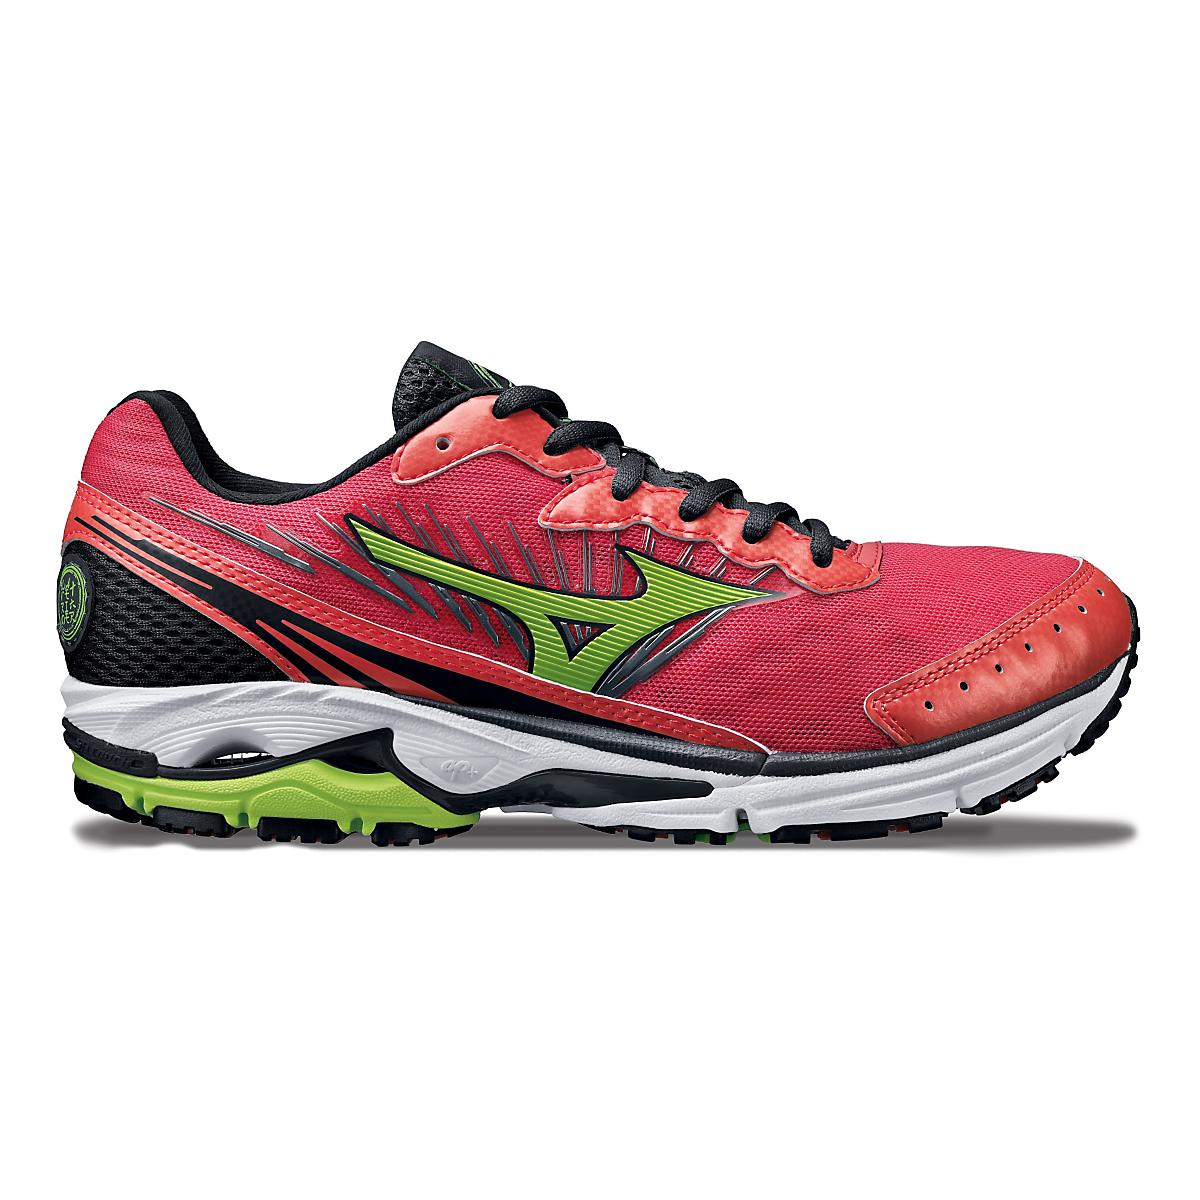 sports shoes c813b ad8d8 Womens Mizuno Wave Rider 16 Running Shoe at Road Runner Sports